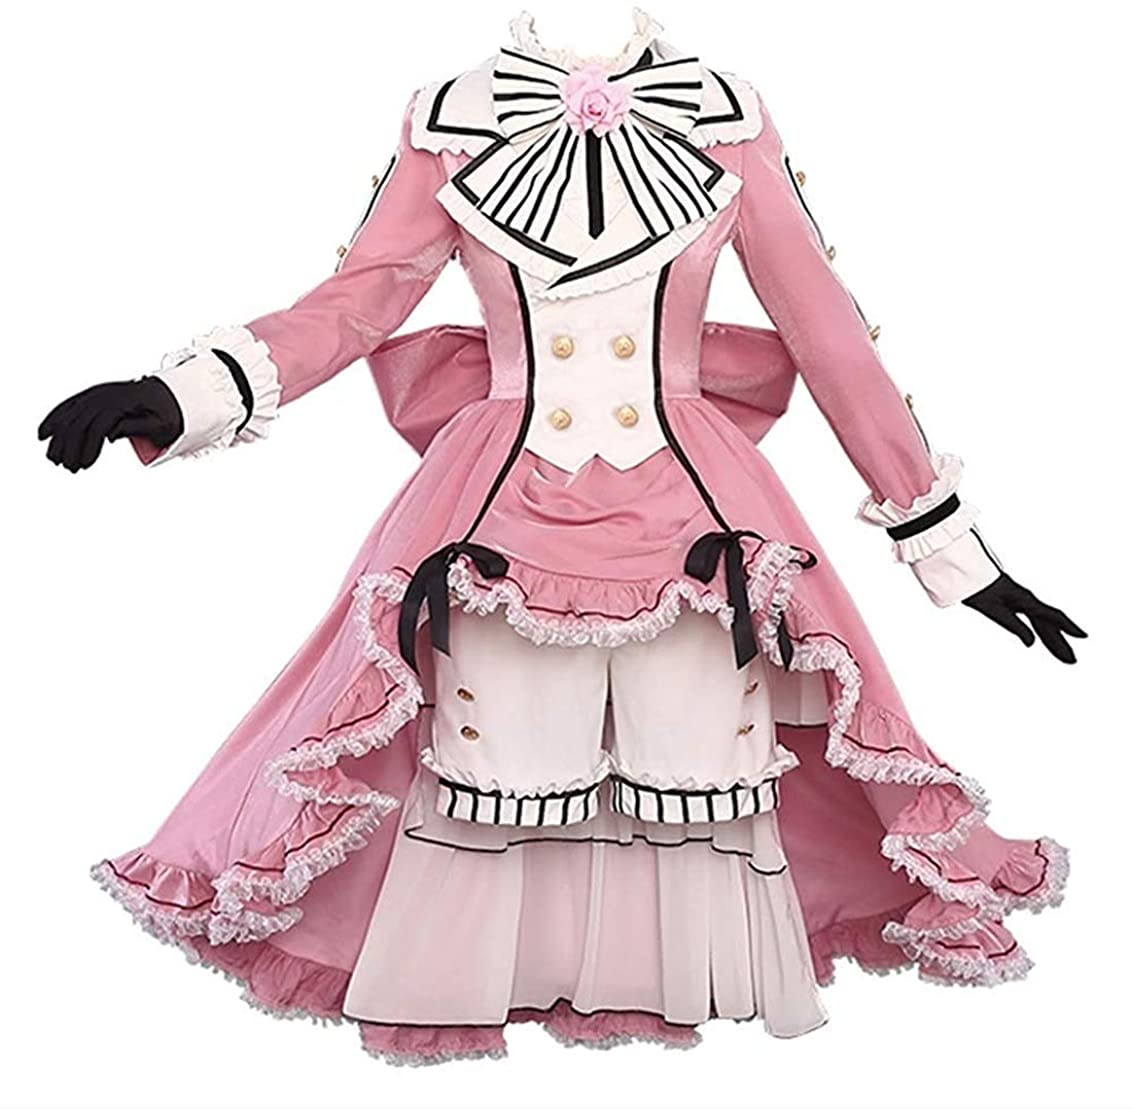 Anime Black Butler Ciel Phantomhive Costume Cosplay Sets Outfit Party Gift